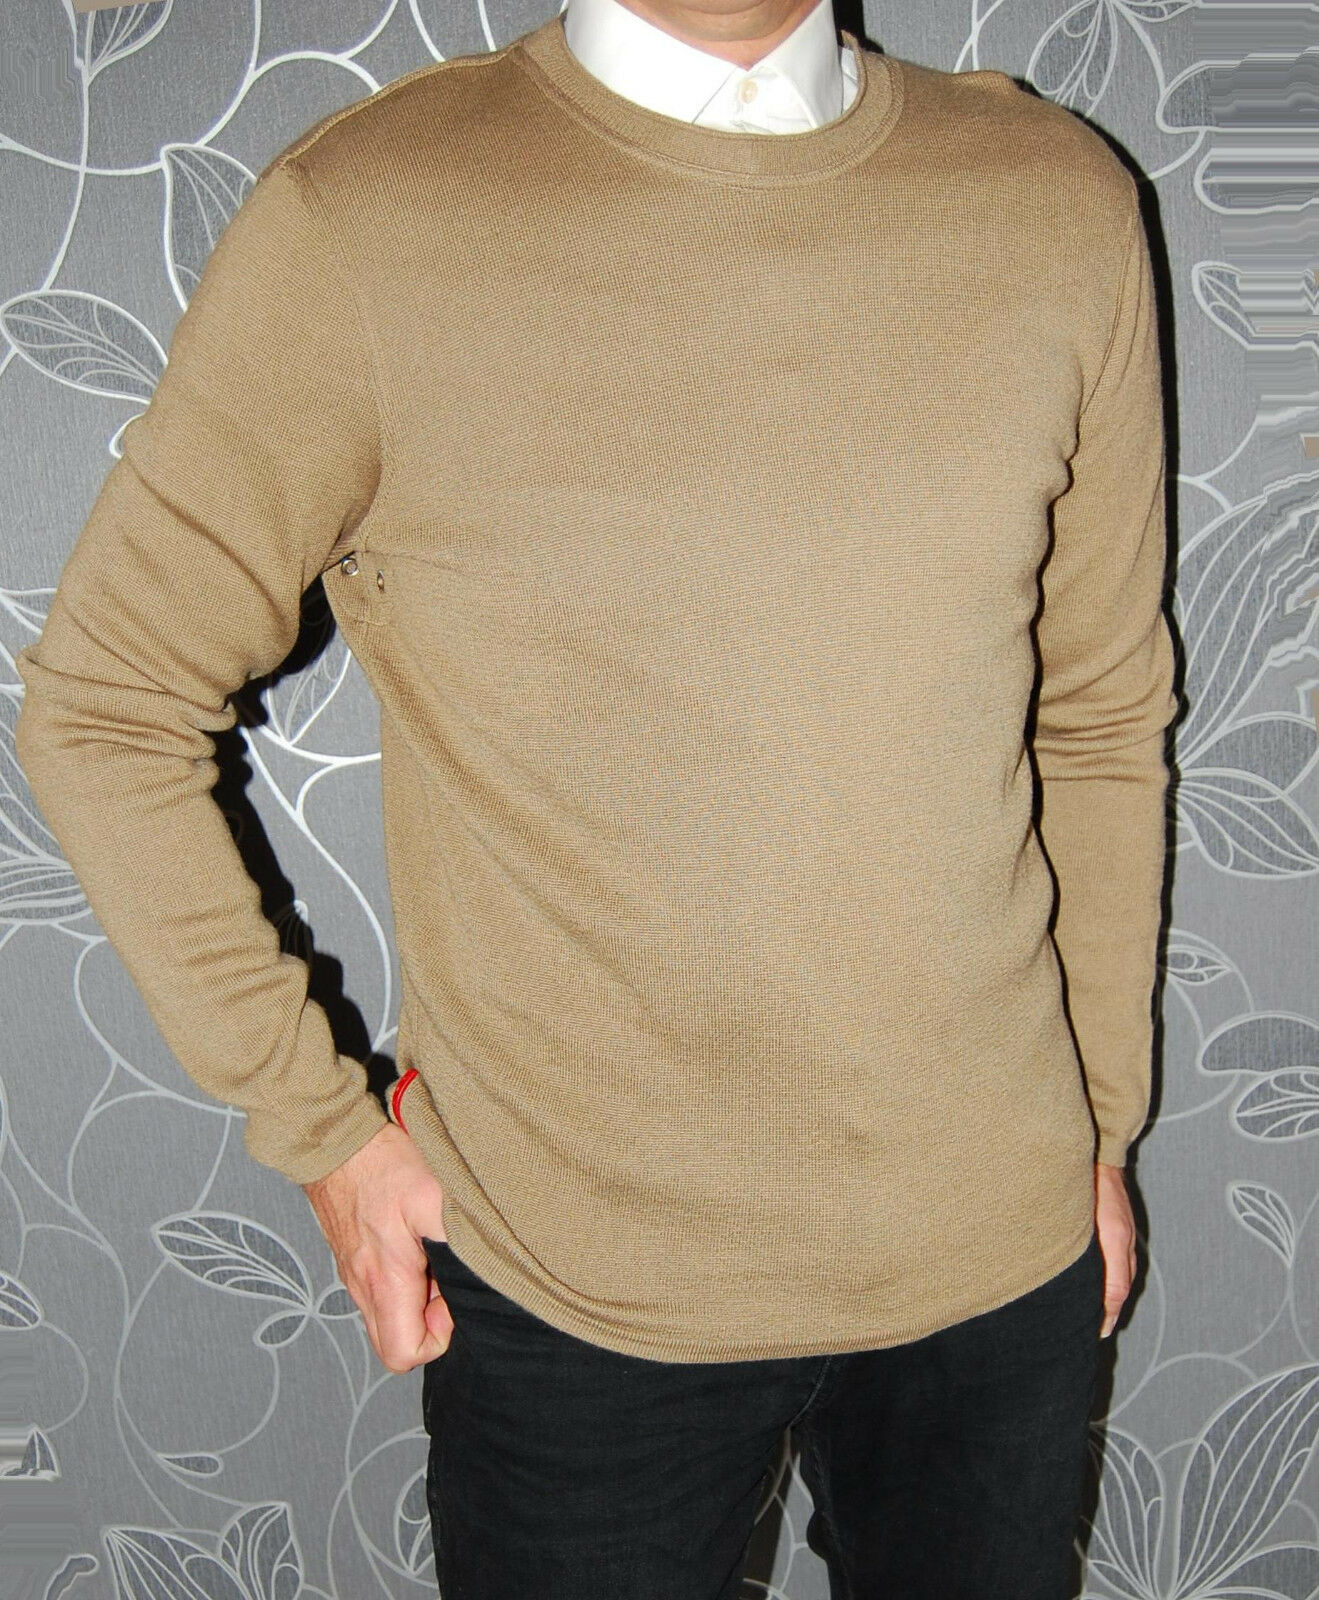 PRADA  Herren 100% WOOL SWEATER Größe IT54